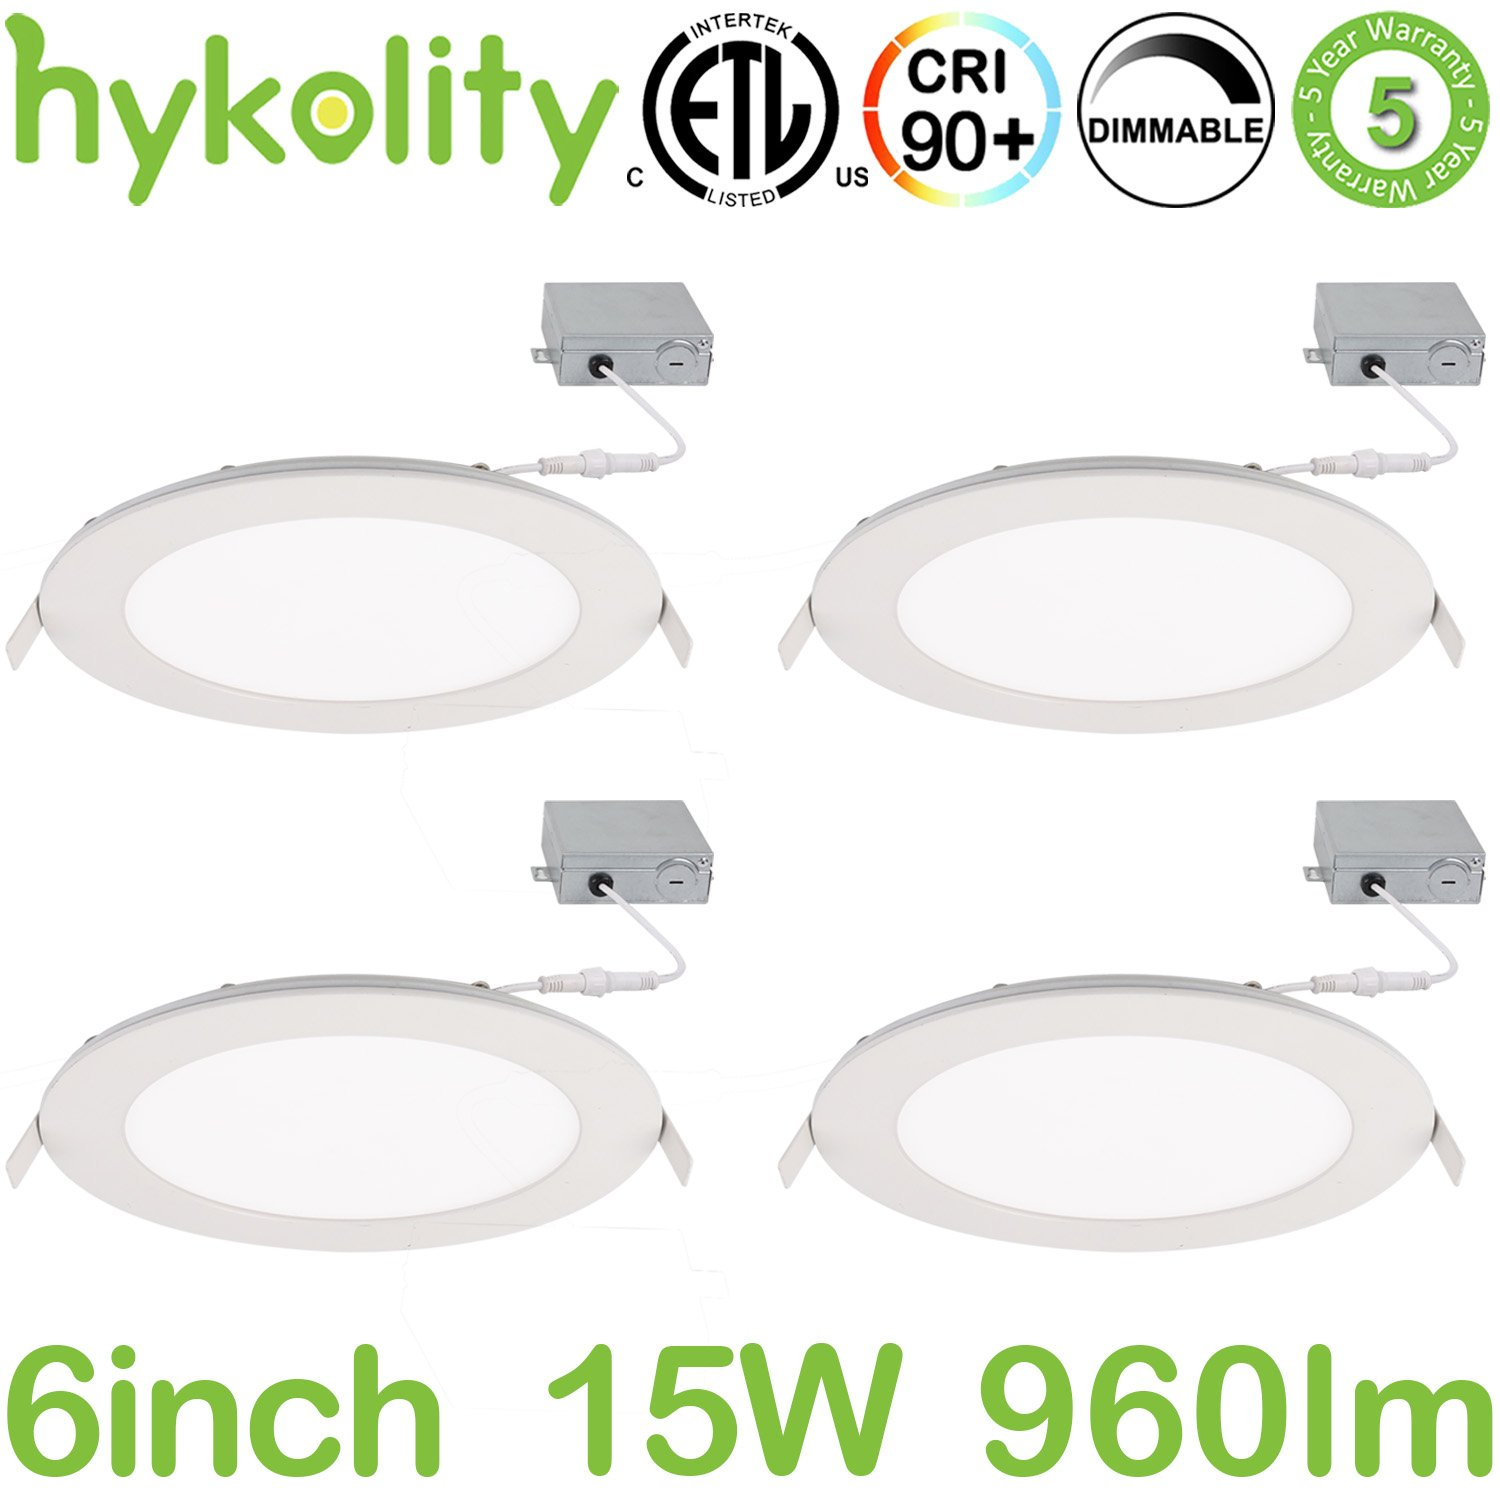 Hykolity 15W 6 inch LED Slim Recessed Ceiling Light, Low Profile Downlight with Juction Box Dimmable, 960lm CRI90, 4000K Neutral White, ETL& Energy Star Listed 4 Pack